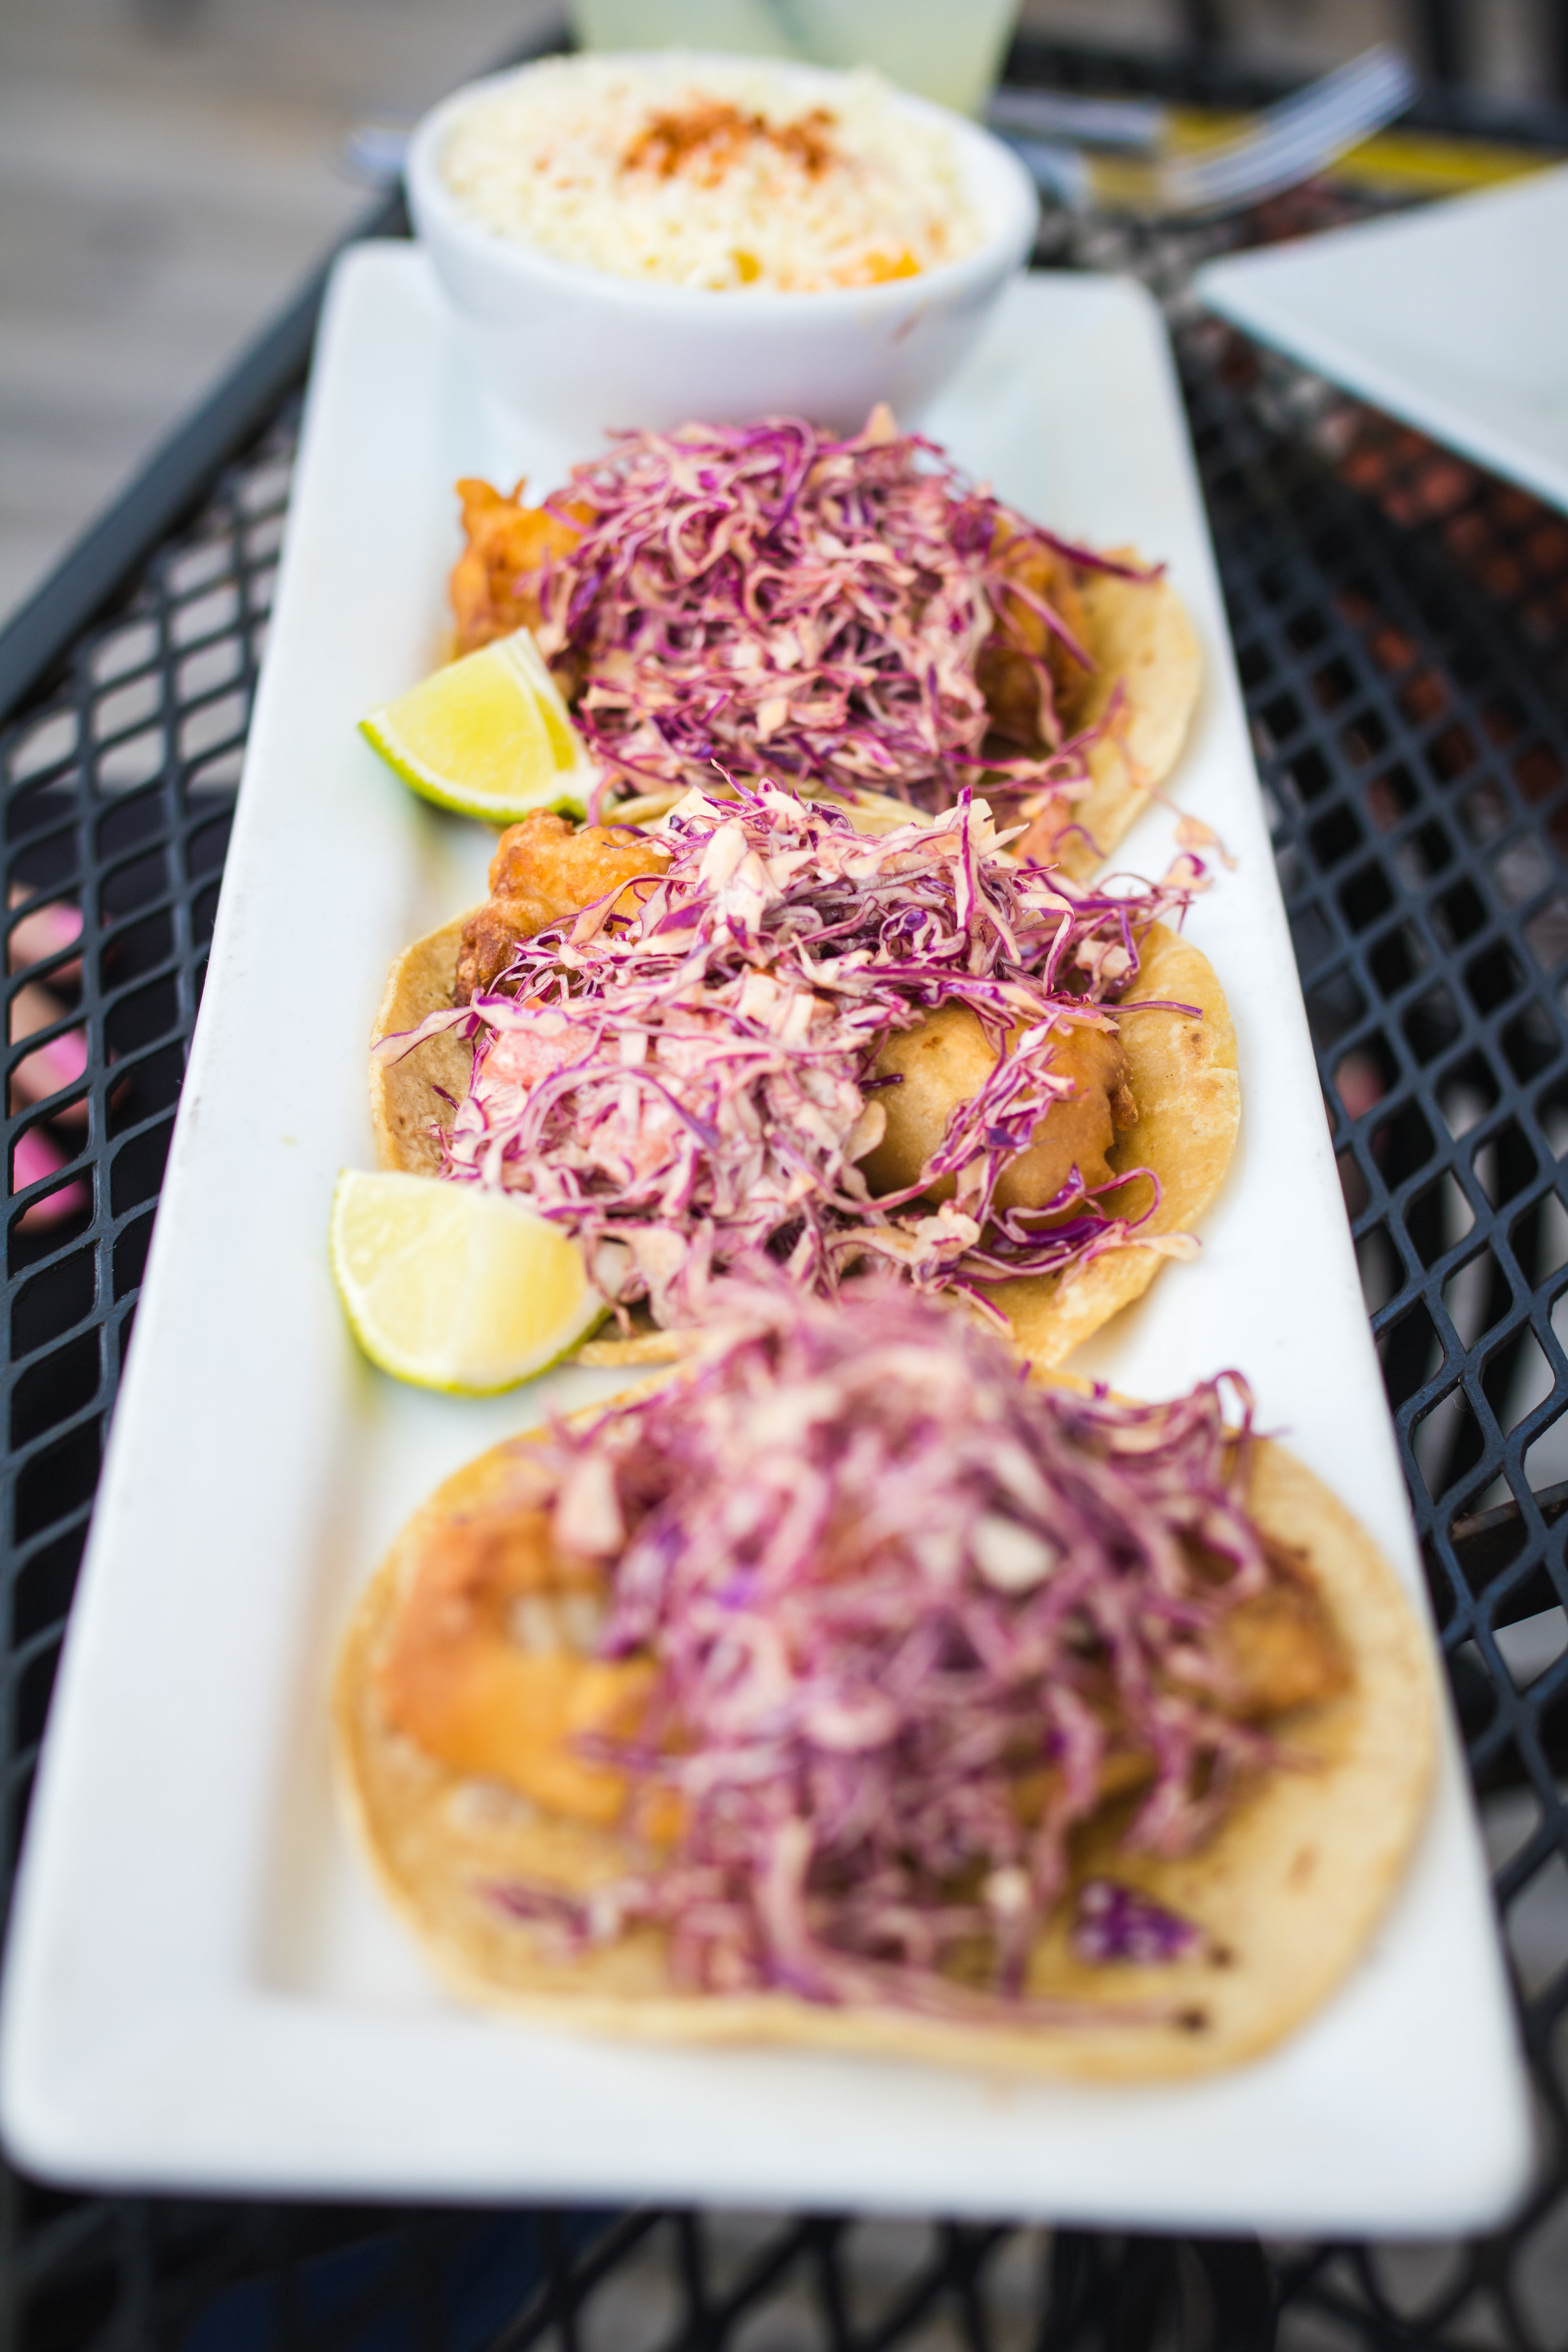 Cabos tacos: beer battered fried fish on soft corn tortillas with red cabbage slaw and chipotle aioli.